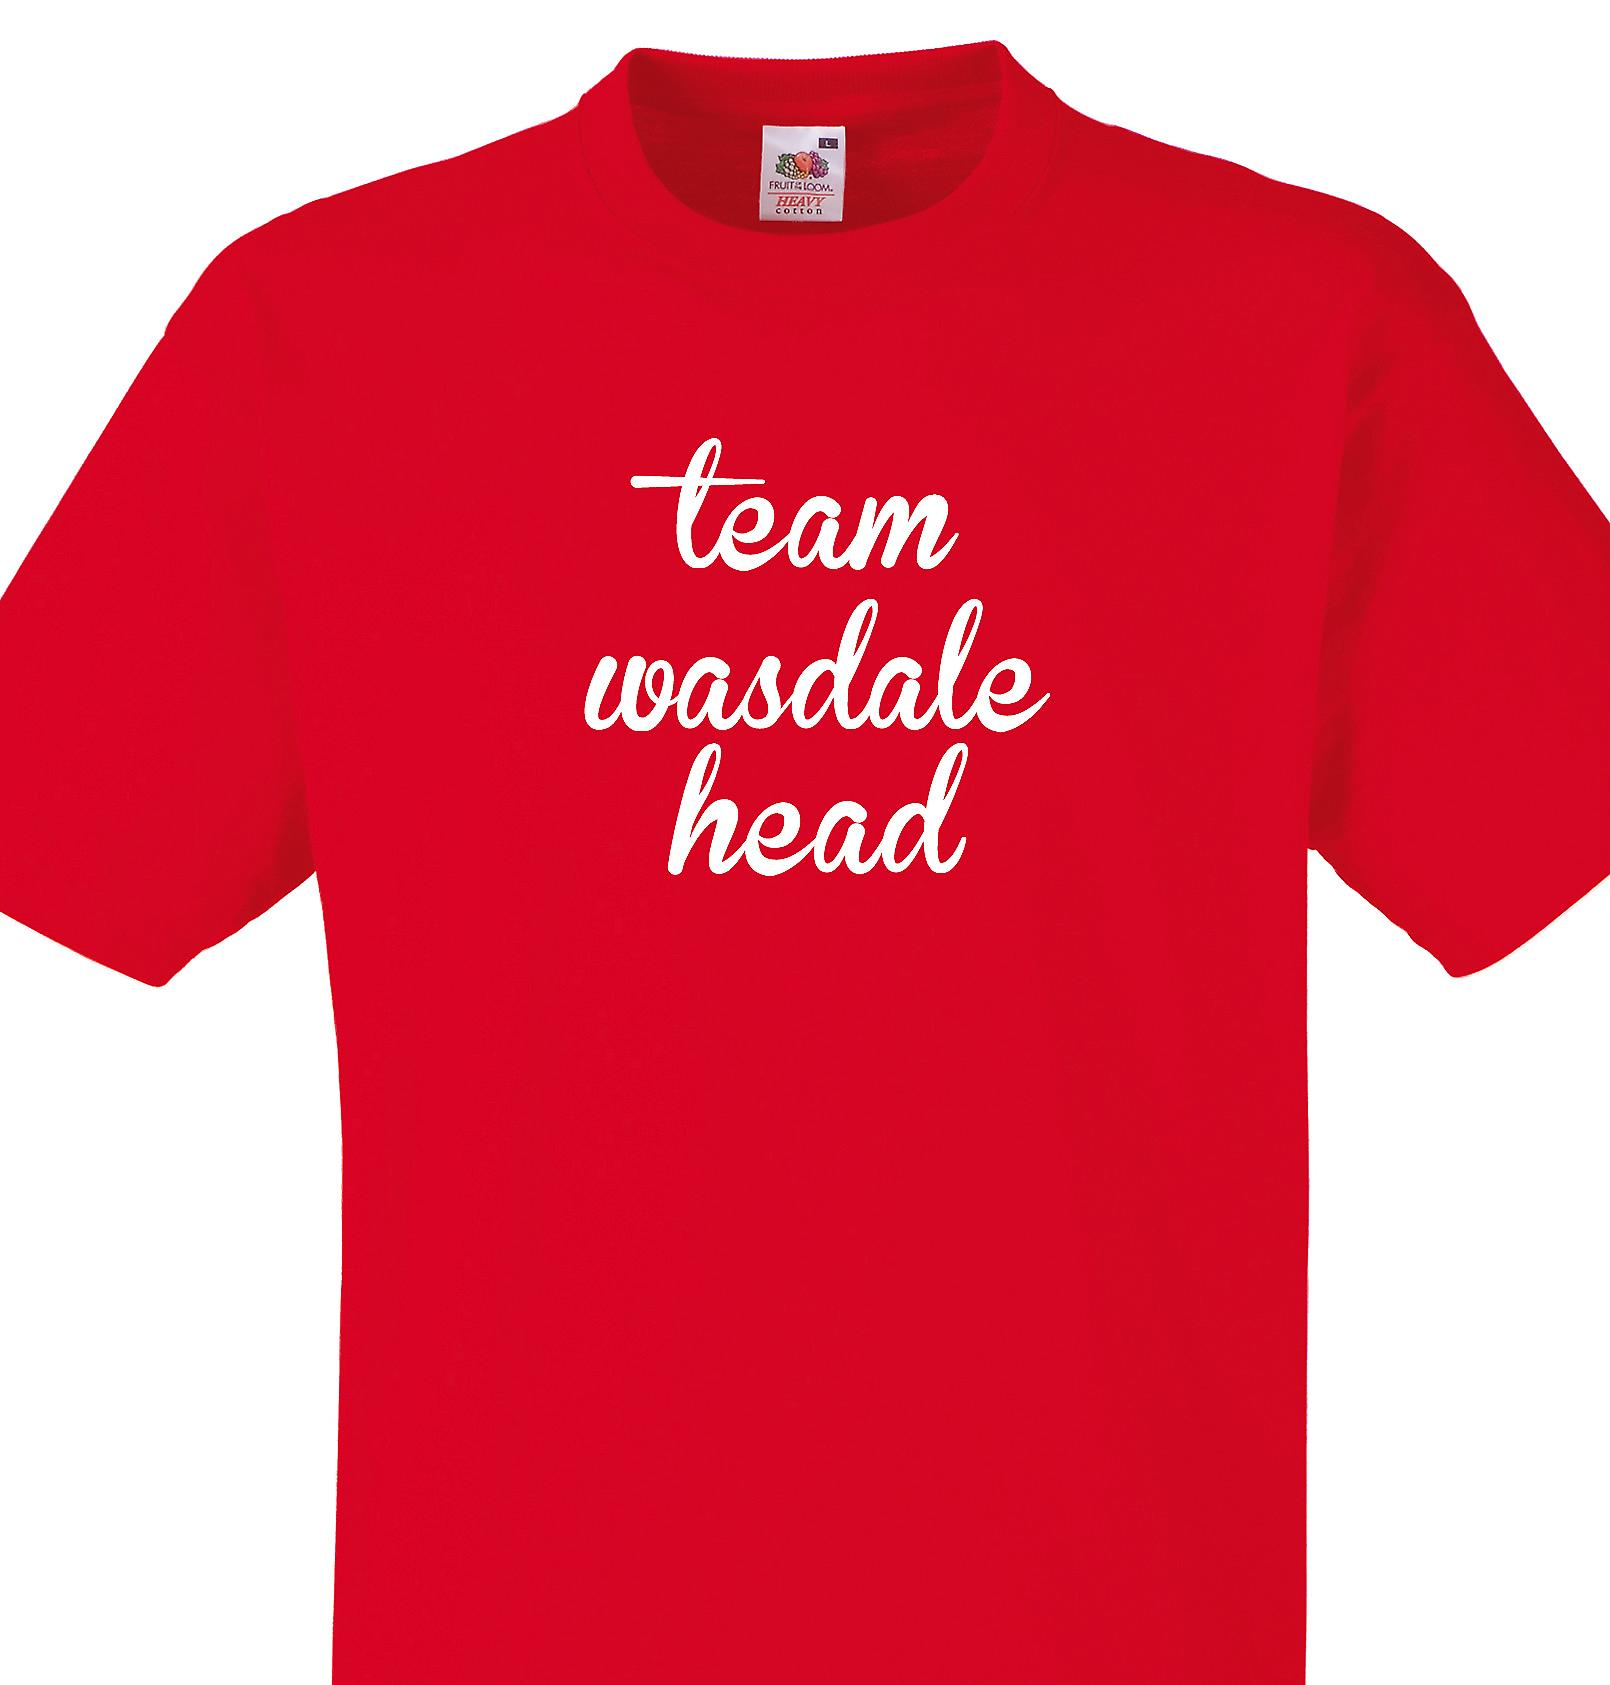 Team Wasdale head Red T shirt